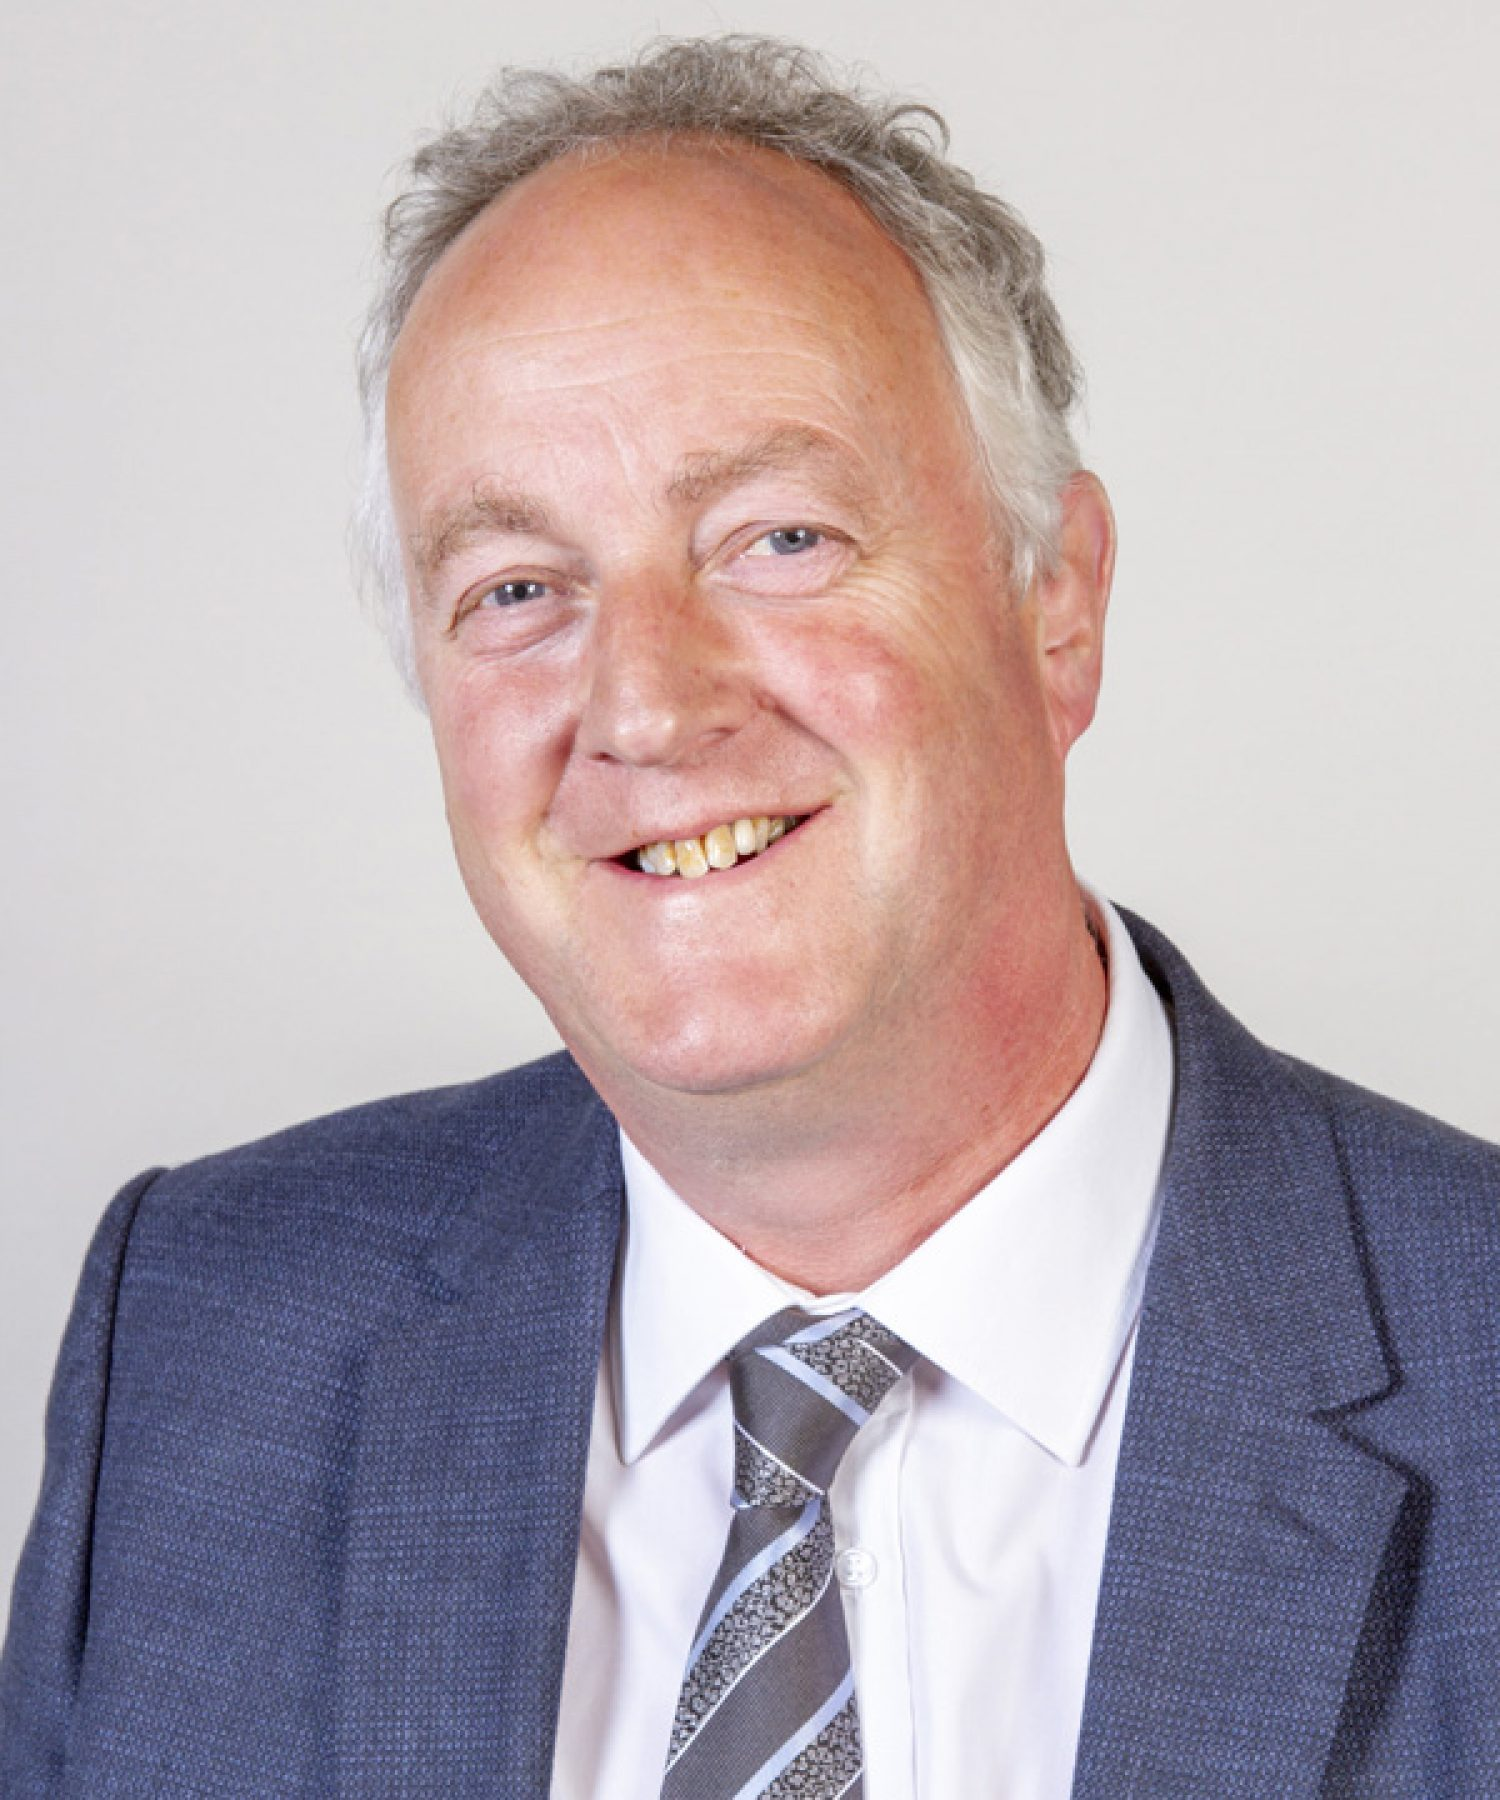 Image of Cllr Colin Pearce taken 2019